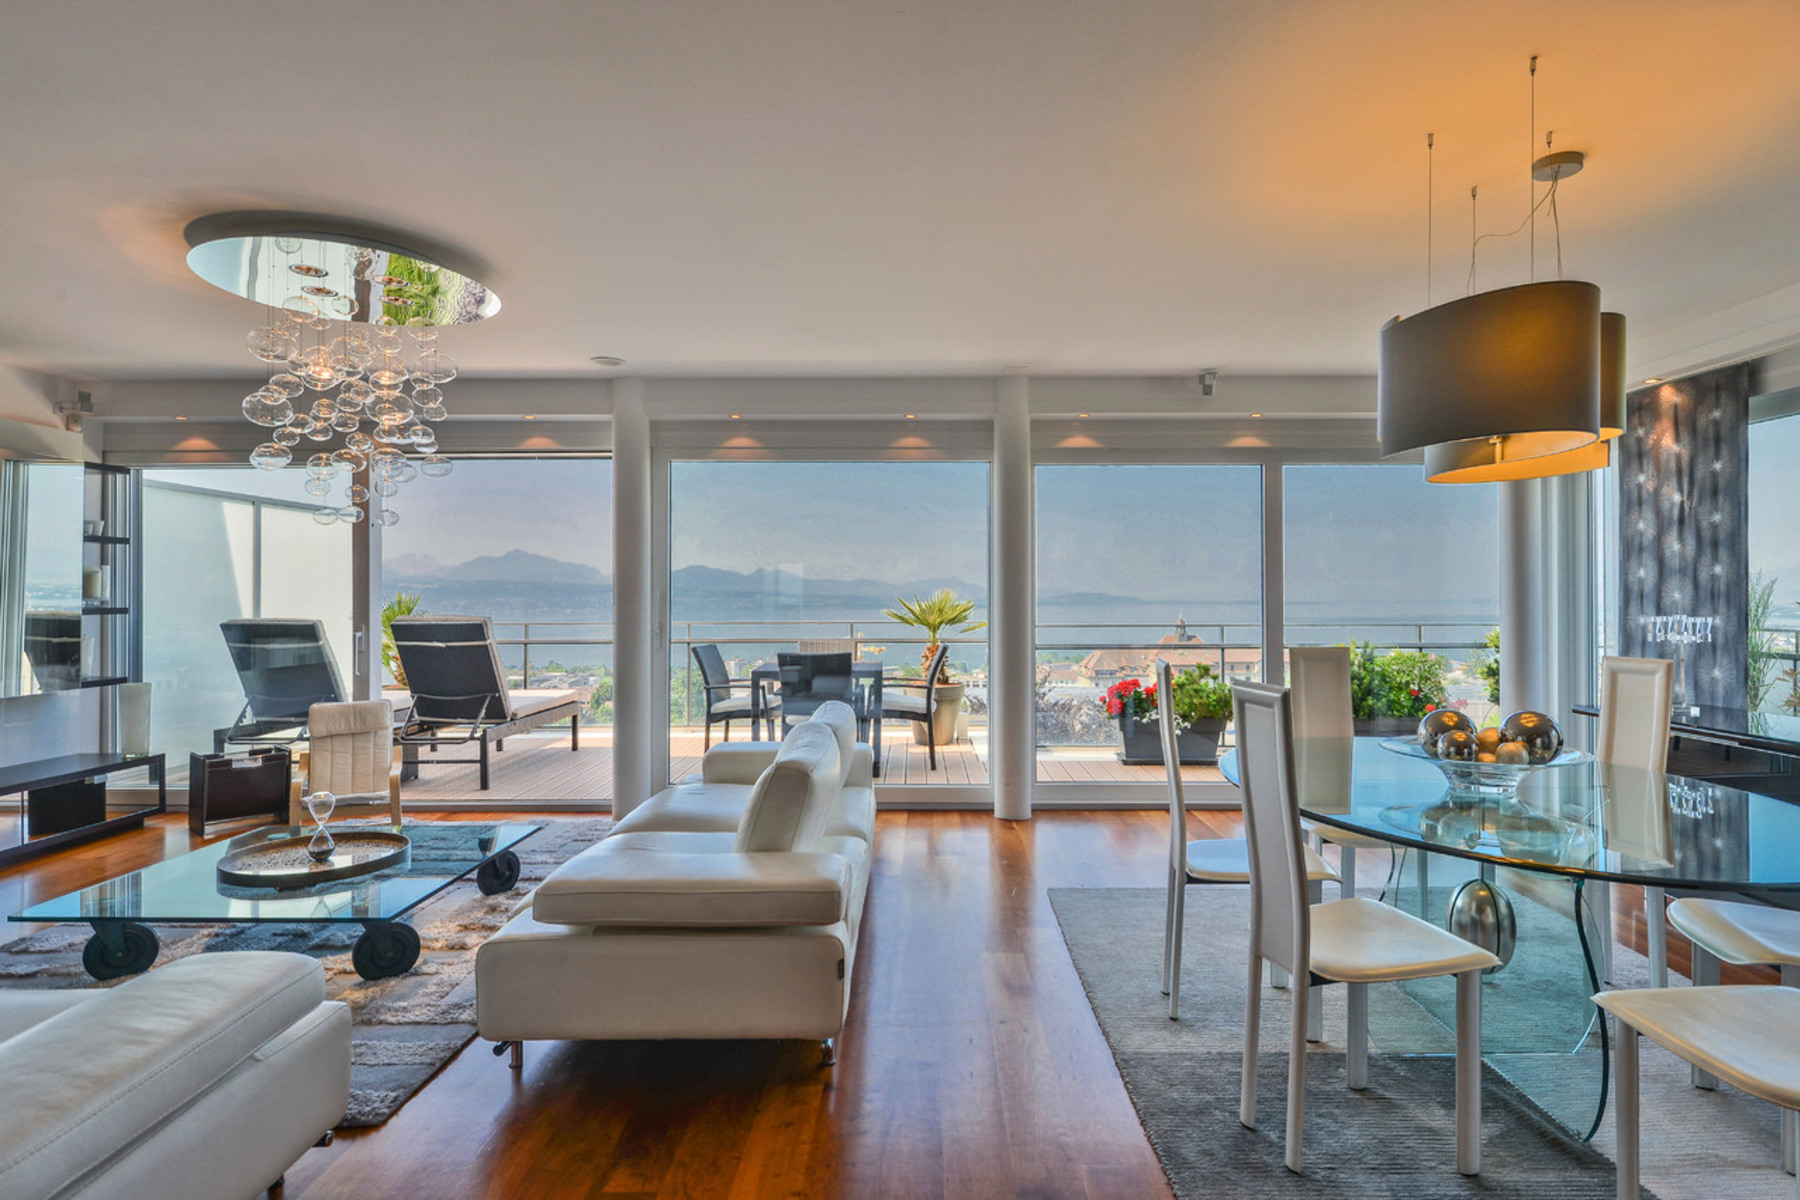 شقة للـ Sale في City Center - Penthouse 5 rooms with a 180 ° view on the lake Lausanne, Lausanne, Vaud, 1004 Switzerland